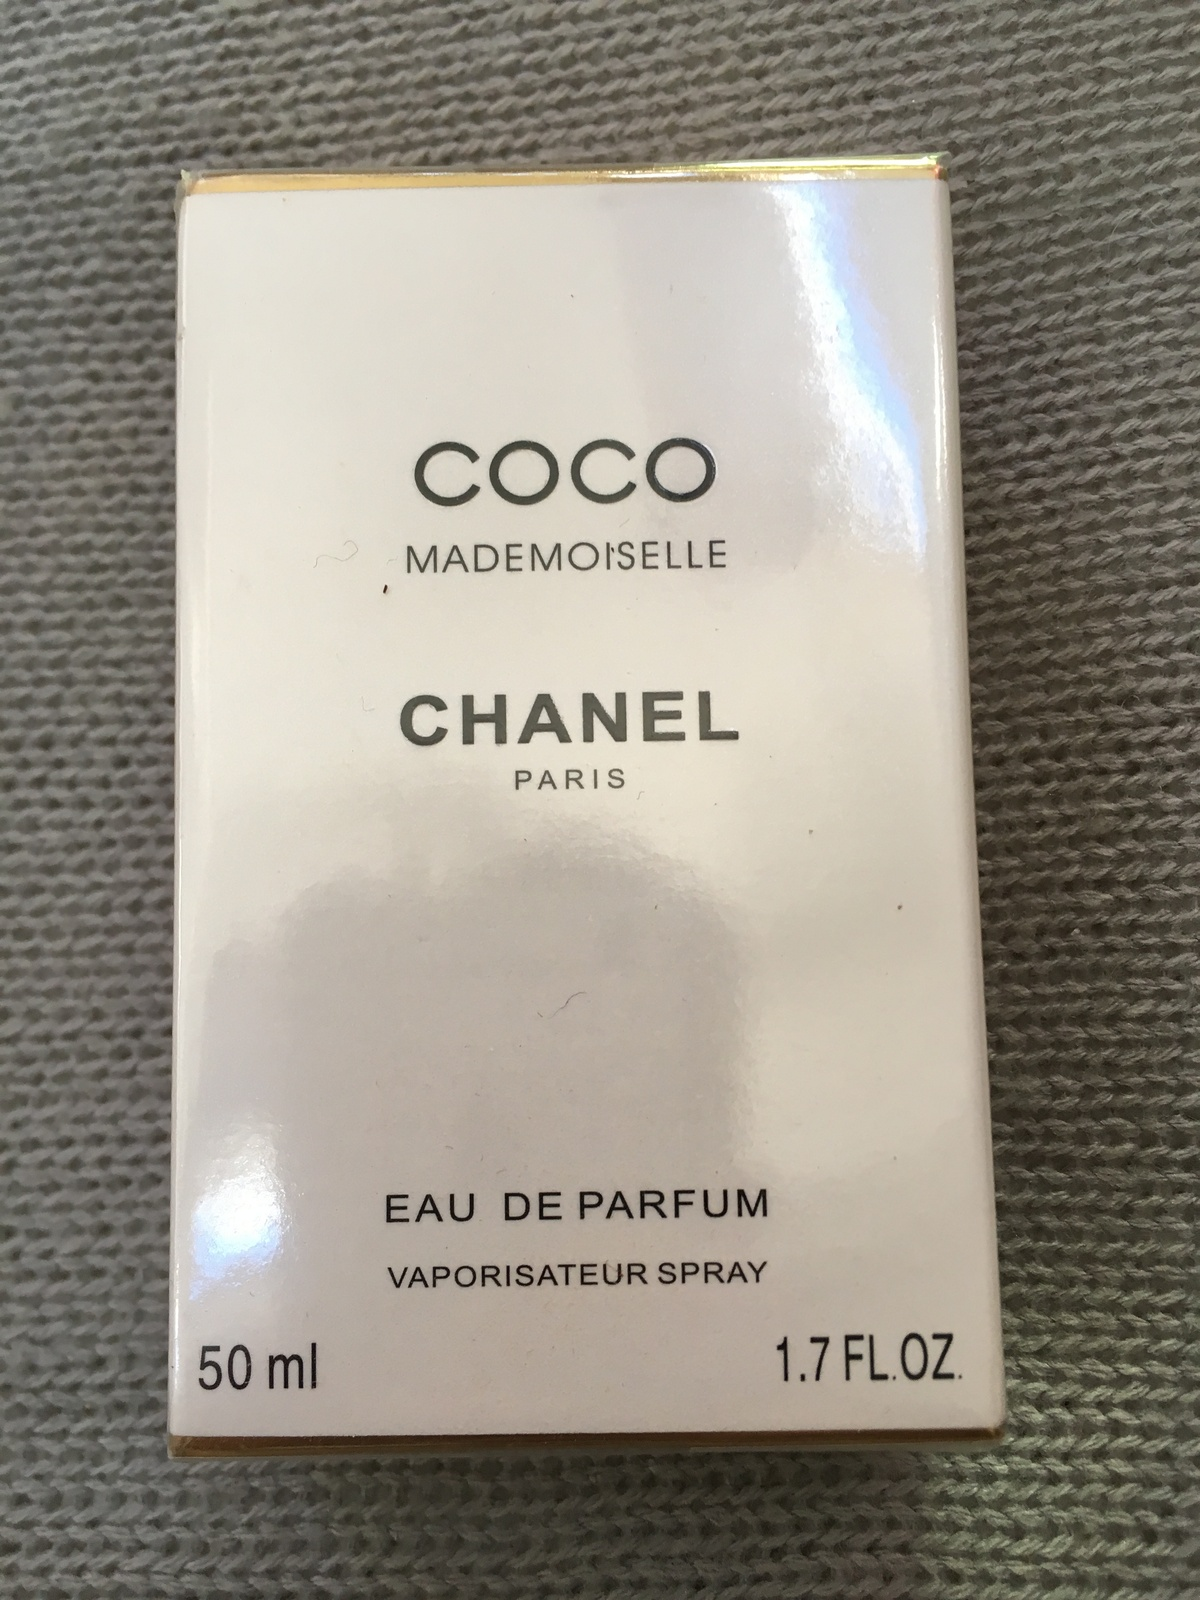 Coco madeoiselle - 50ml, 1,7oz - womens perfume - Brand new